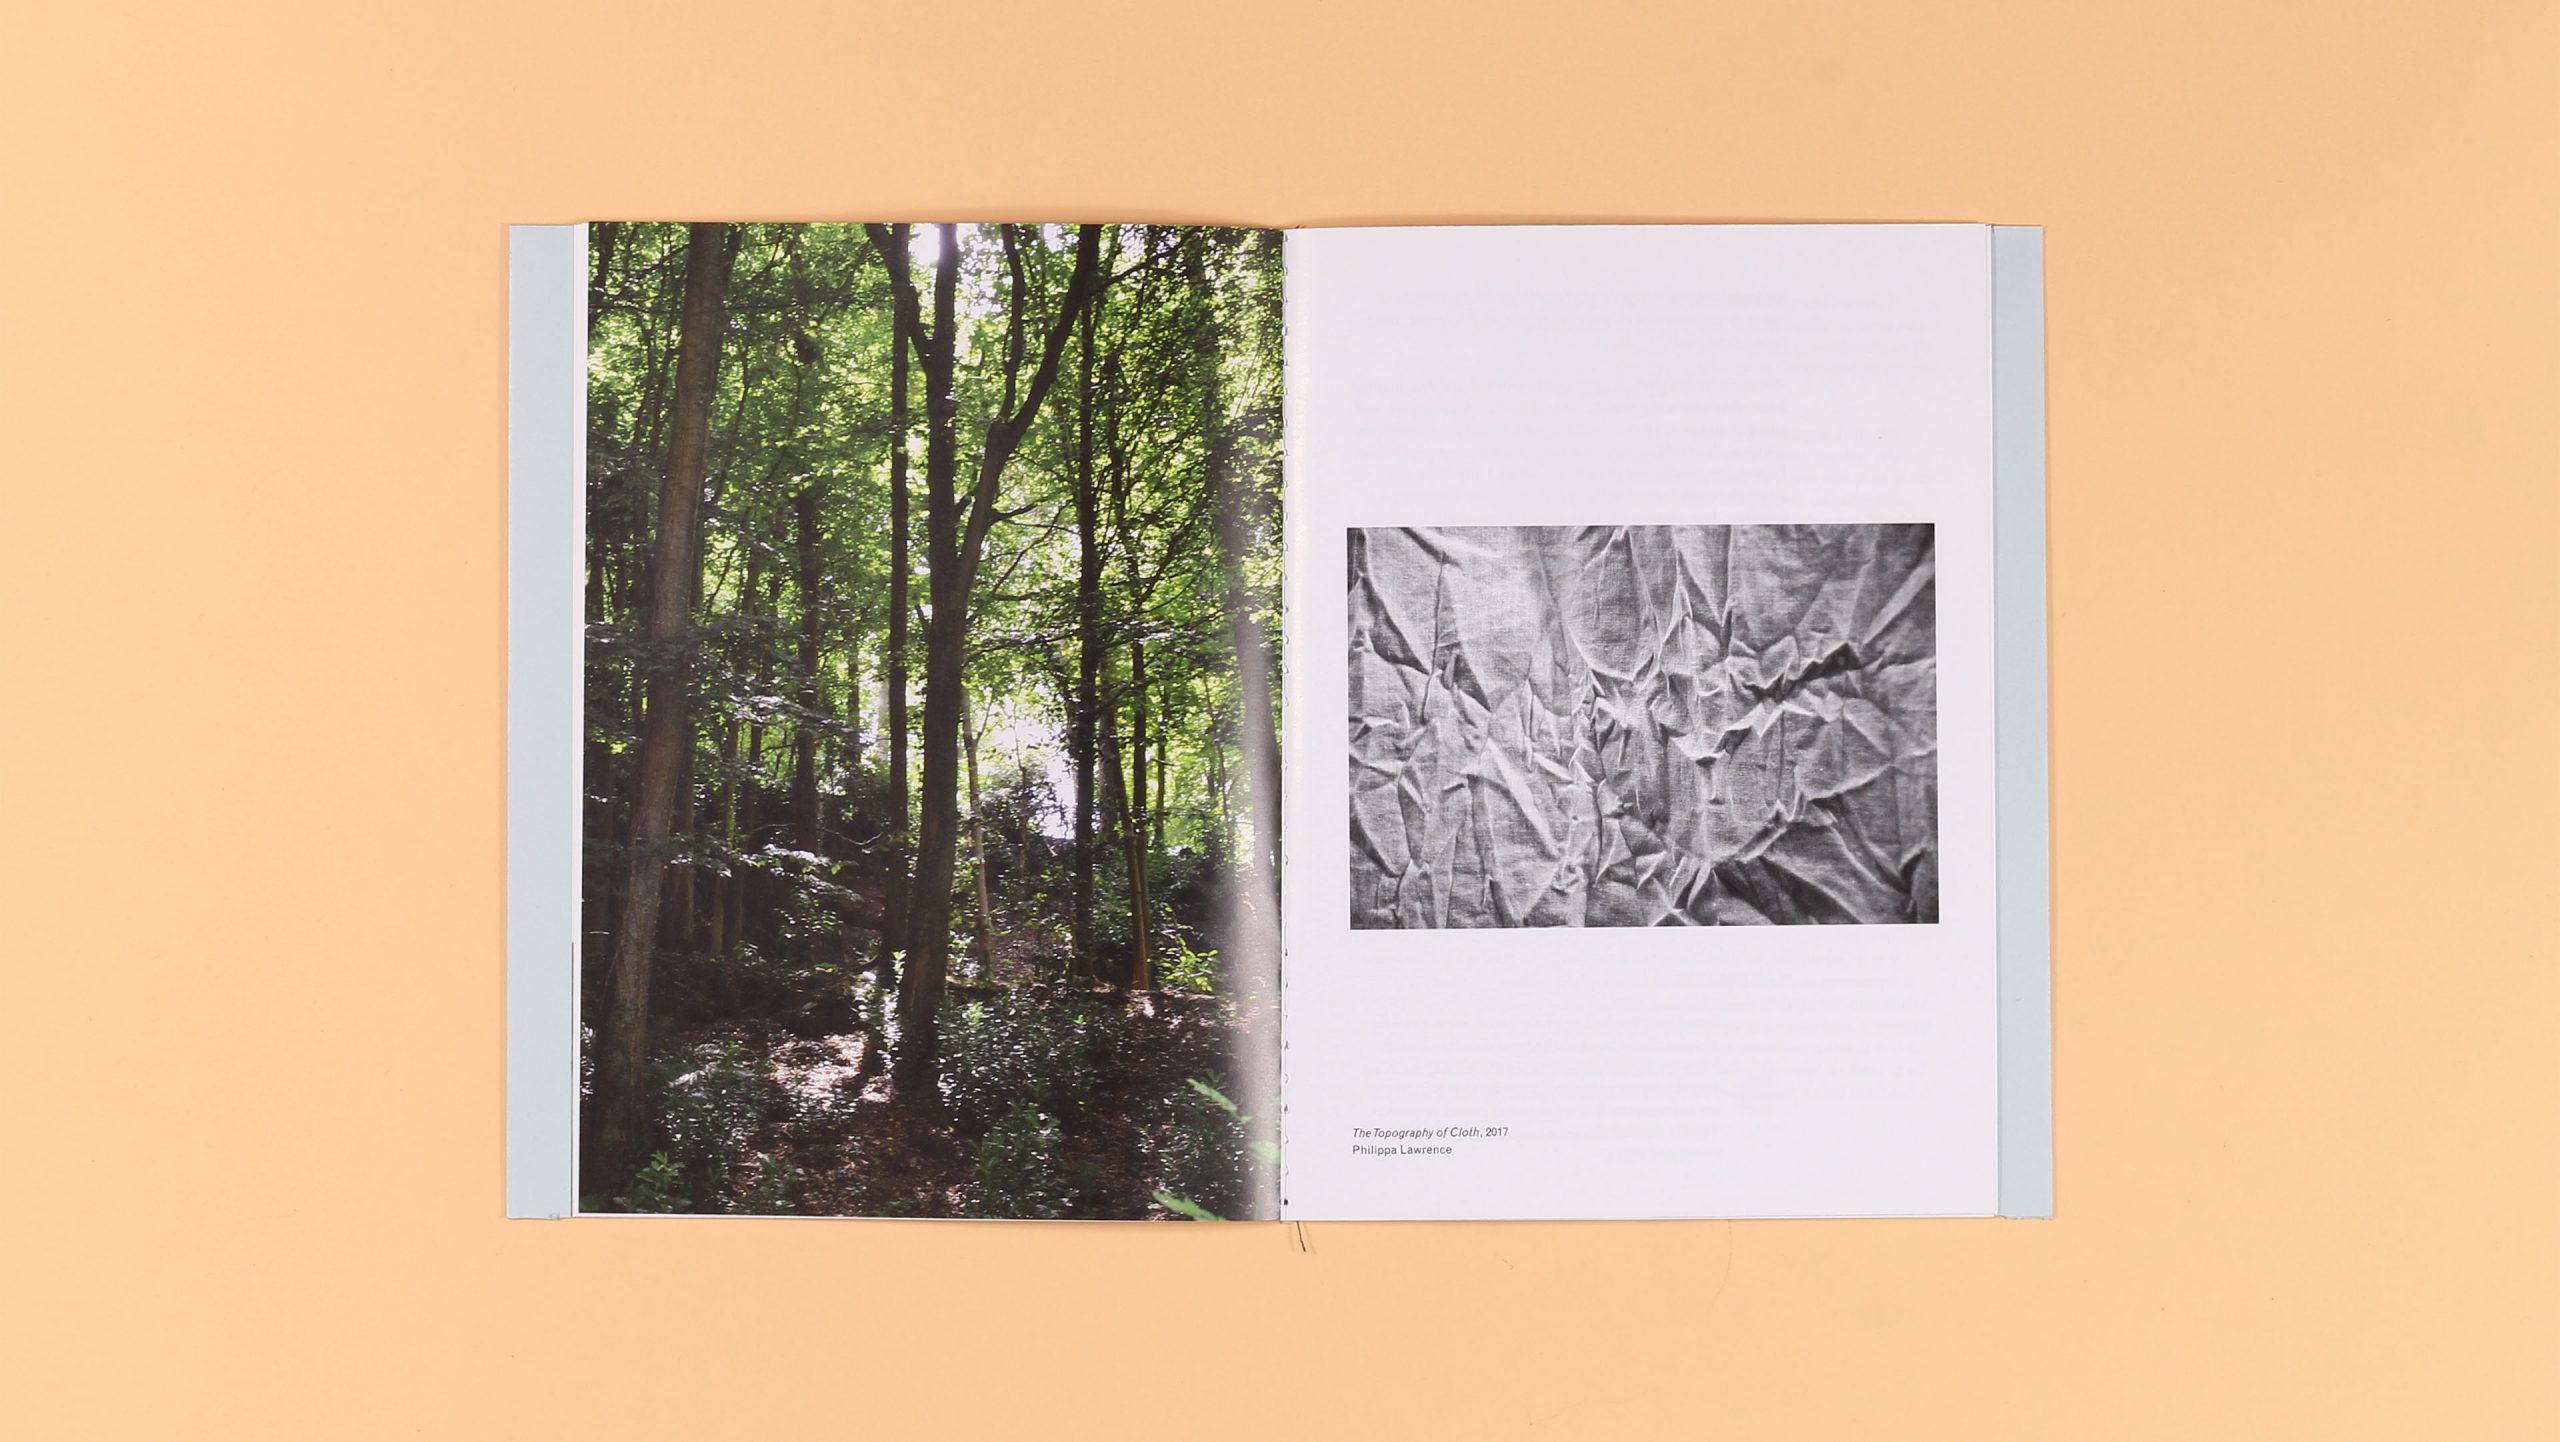 Inside spread of Being Here and Being There, a publication by Philippa Lawrence, designed by City Edition Studio